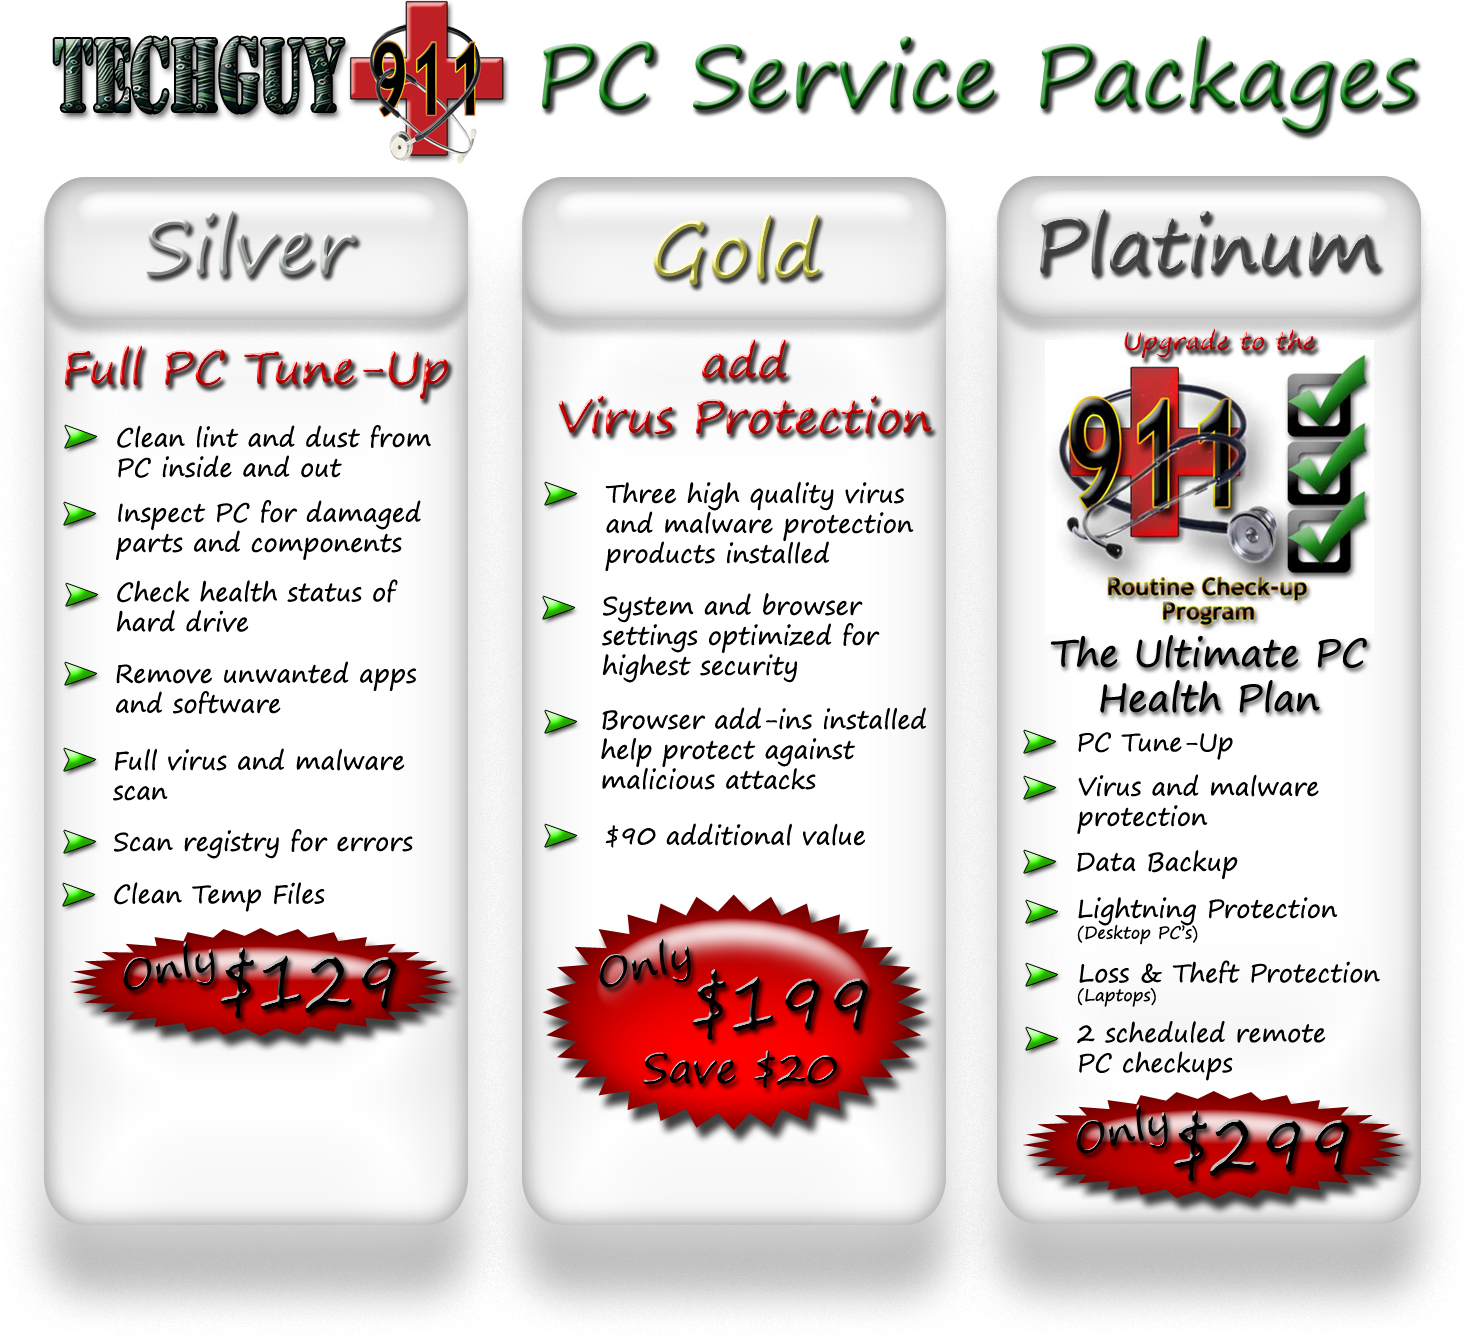 PC-Service-Packages_b.png